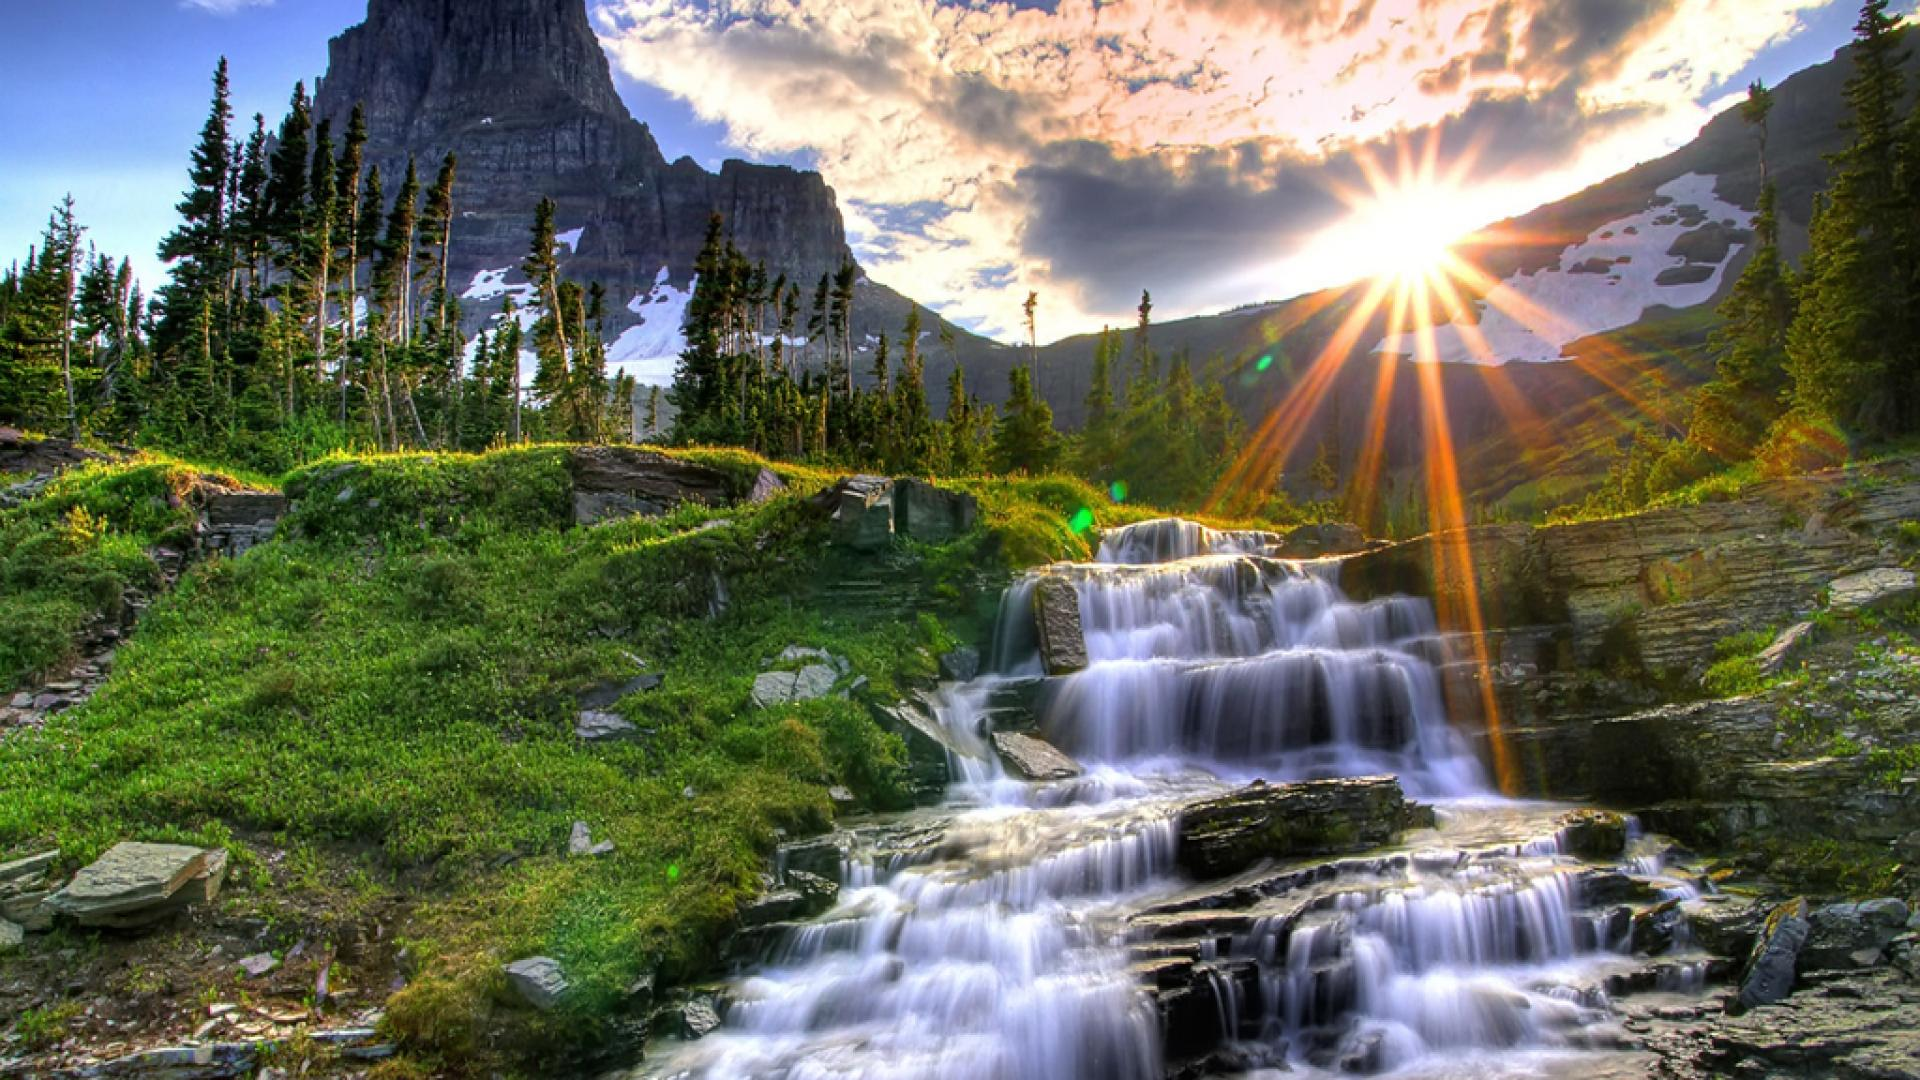 waterfall and nature background destop wallpapers #1591